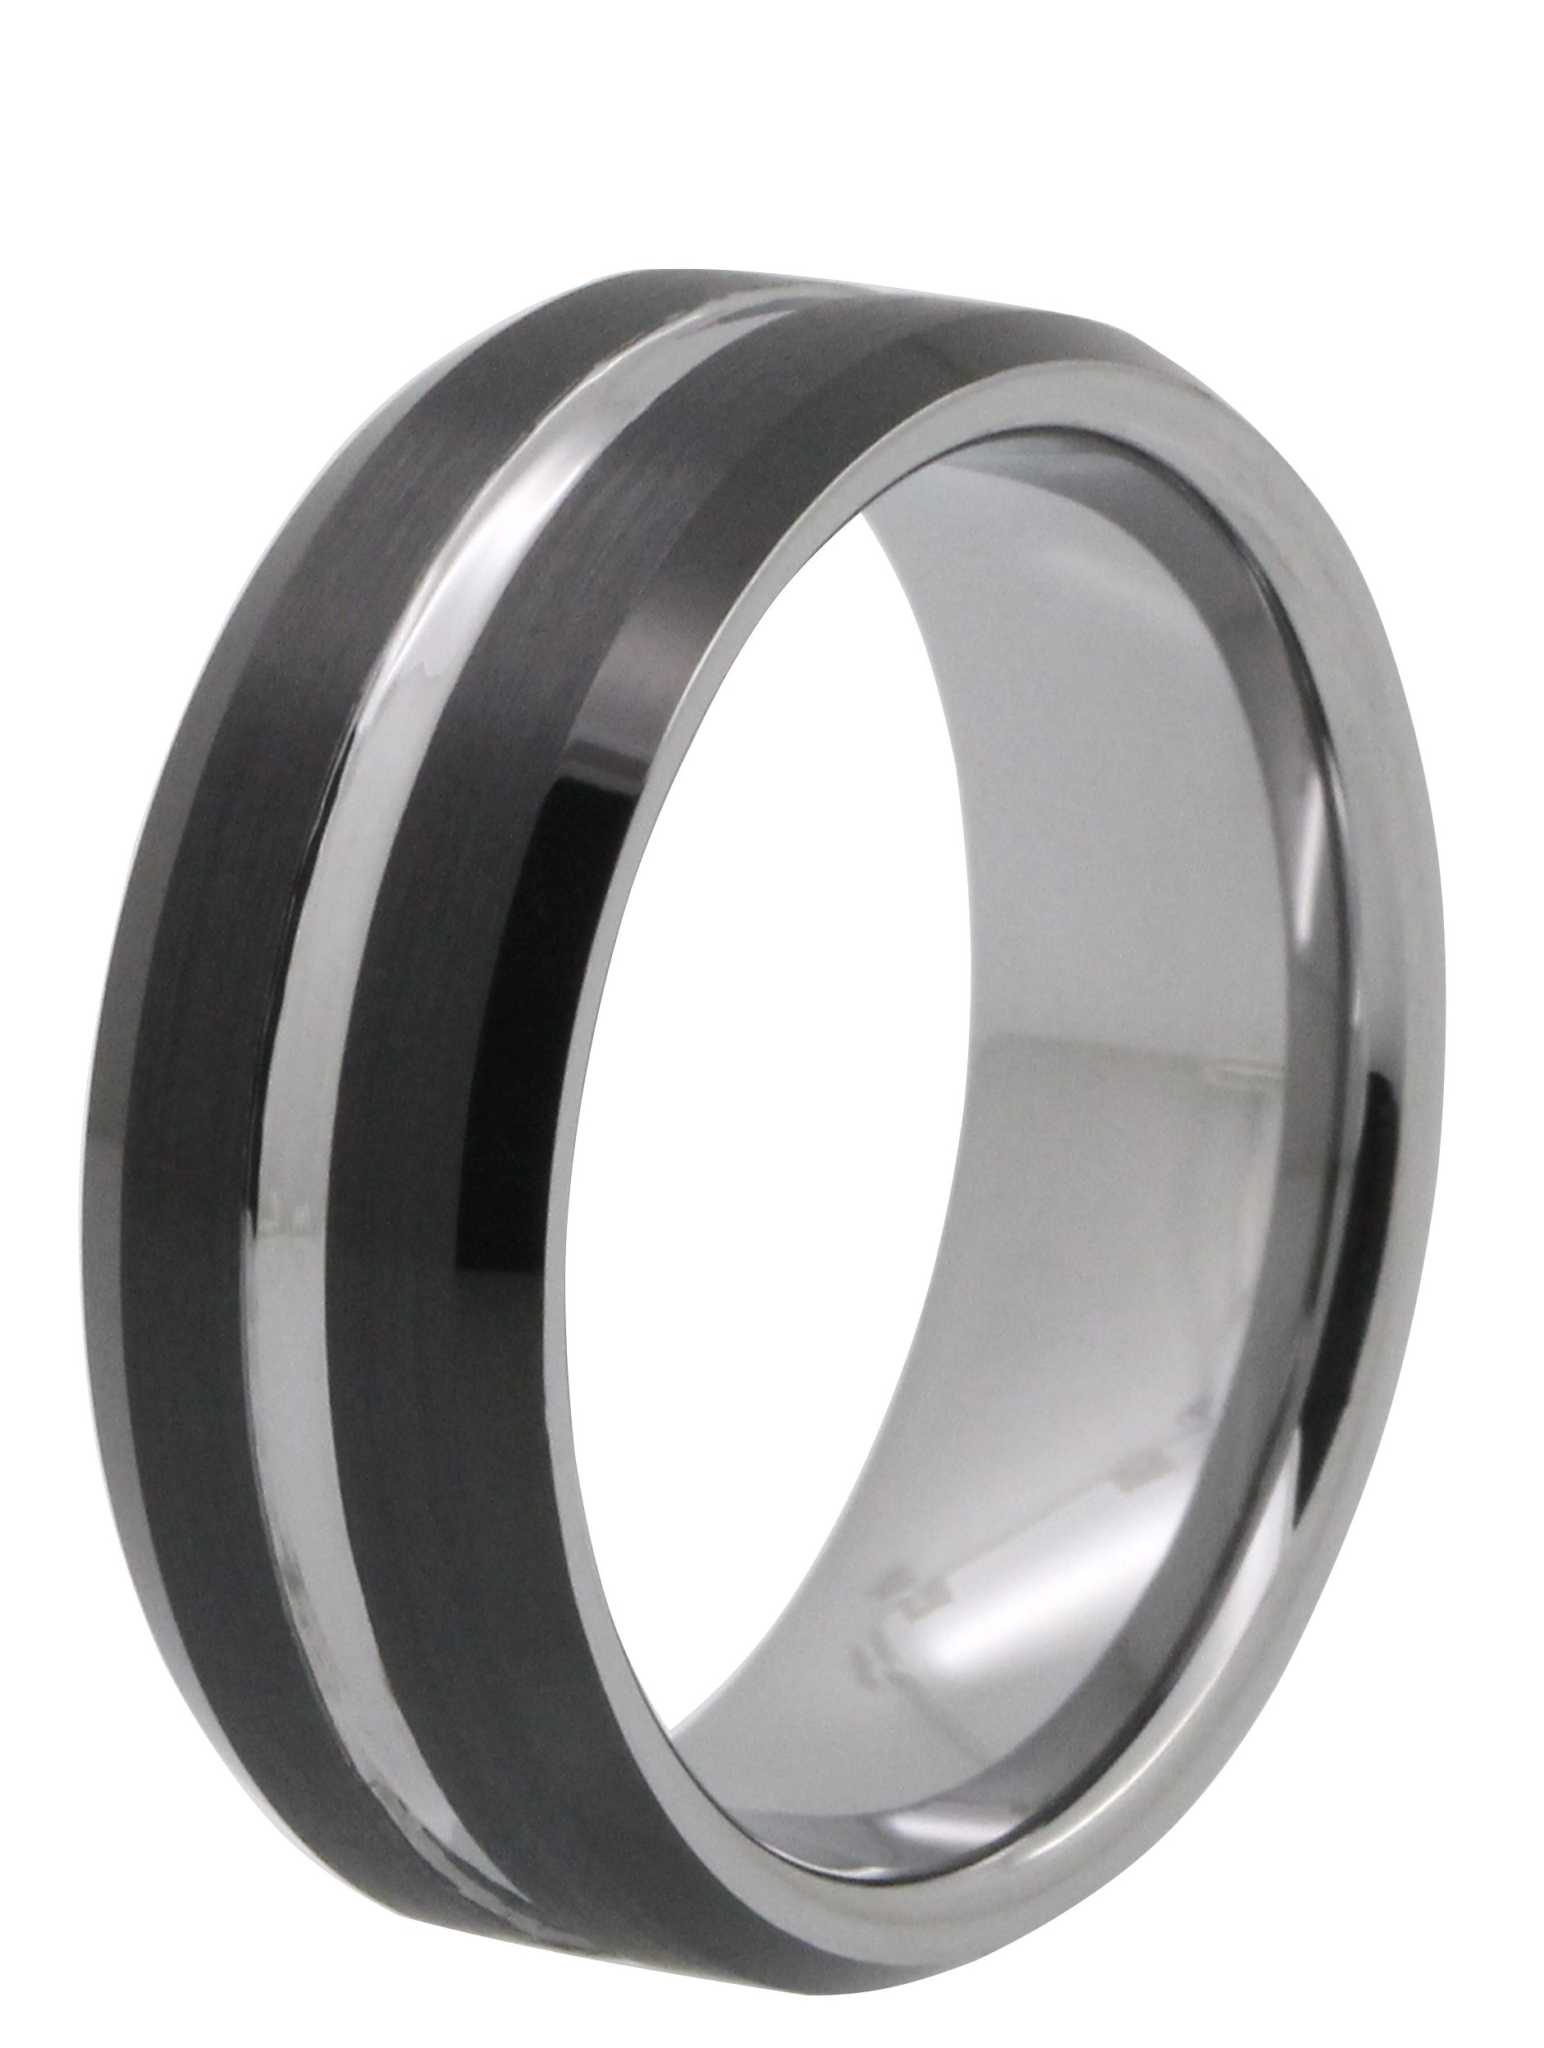 8mm Two Tone Tayloright Tungsten Ring Tungsten Rings Com